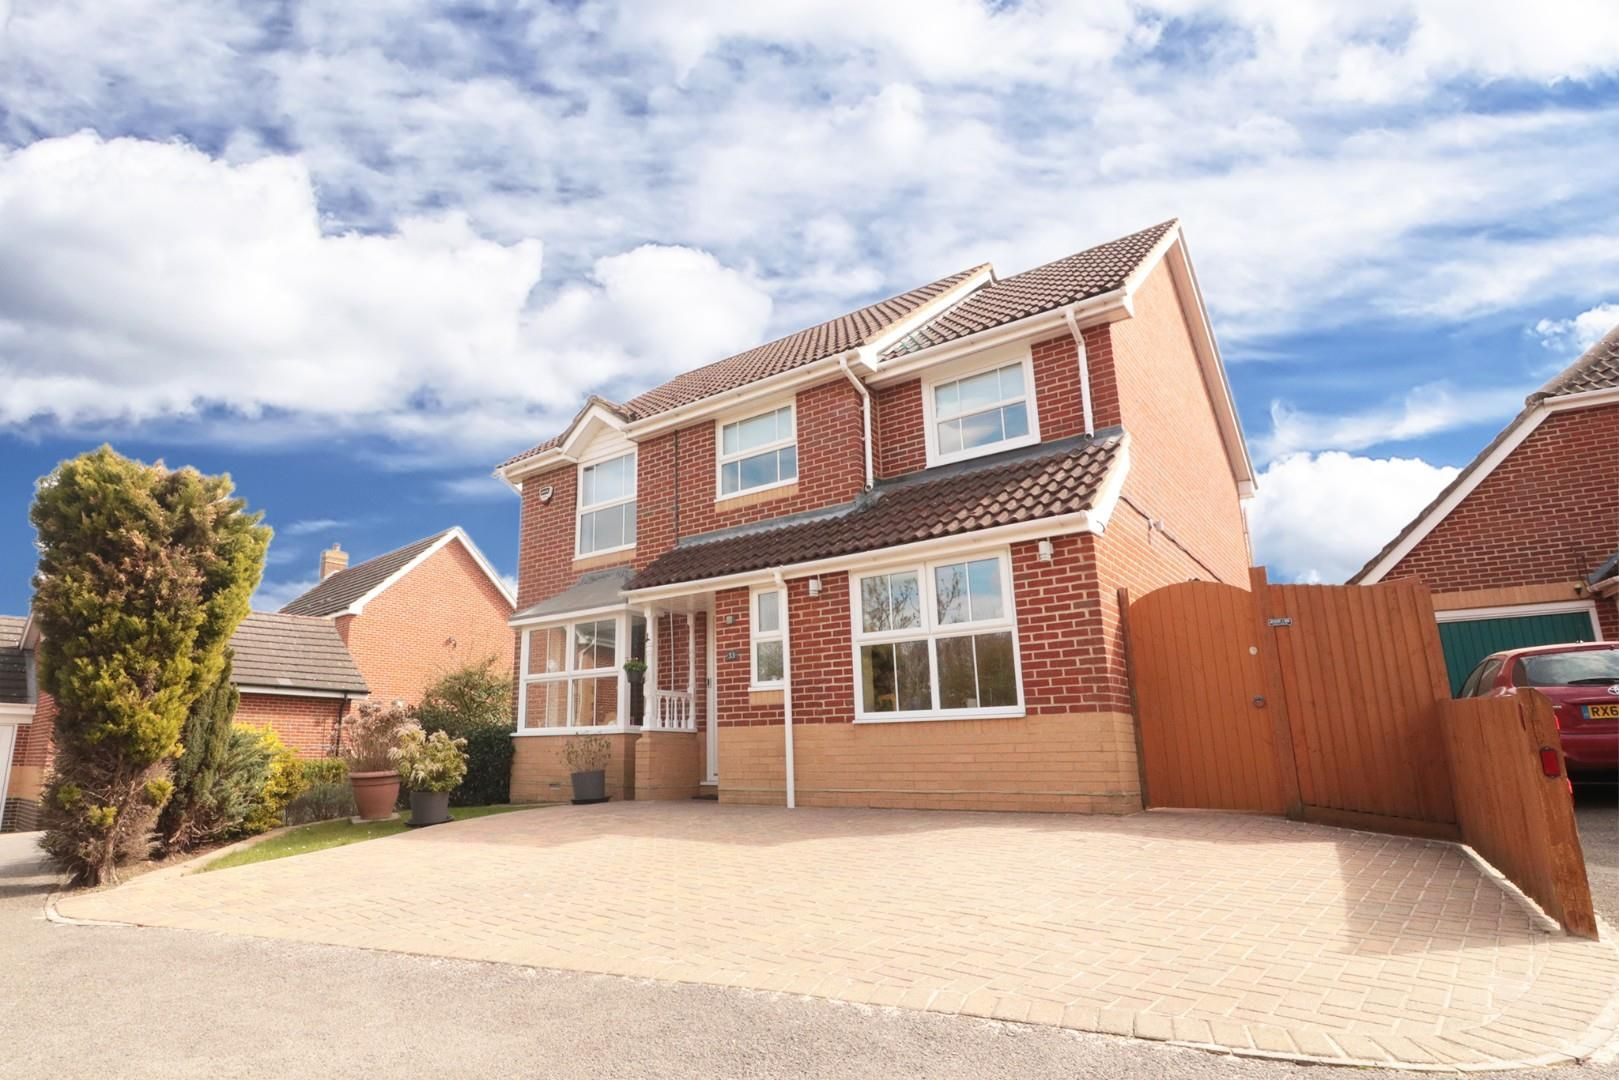 4 bed detached for sale in Binfield 1